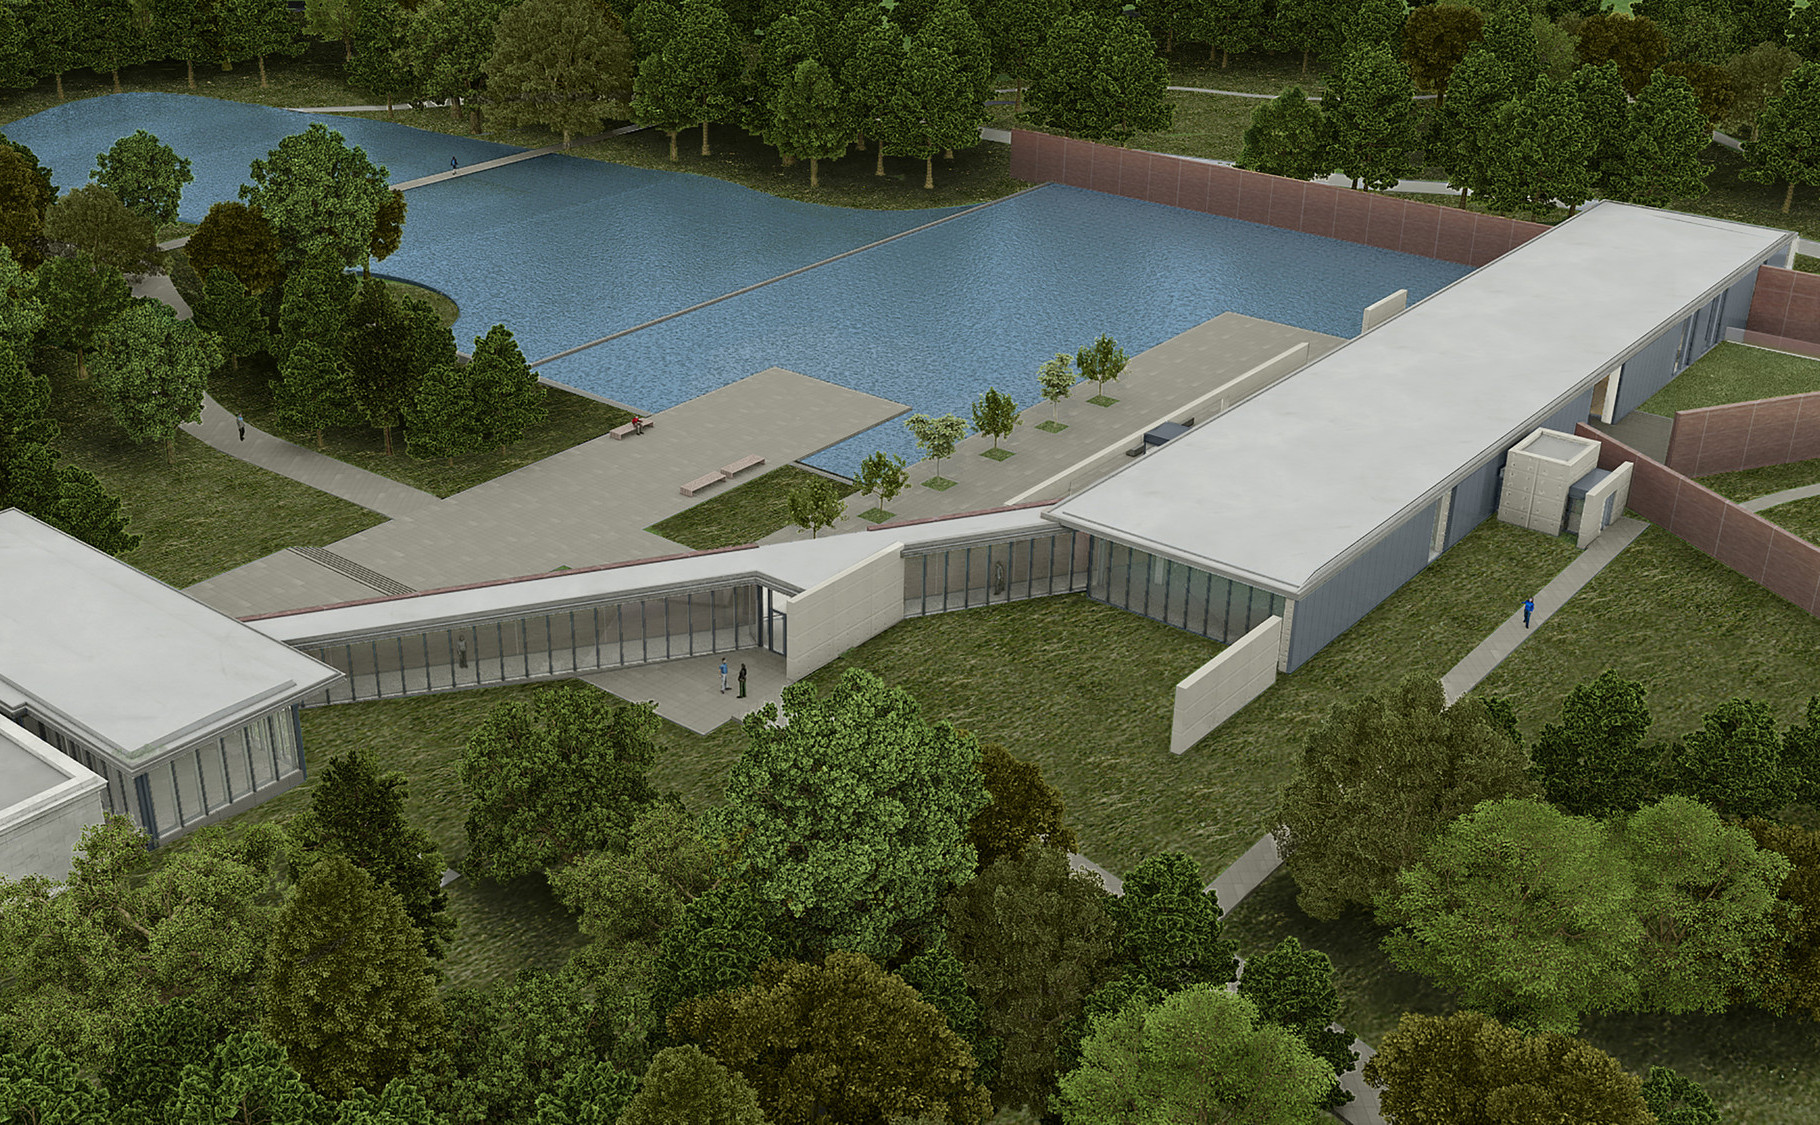 Clark Art Institute | Tadao Ando